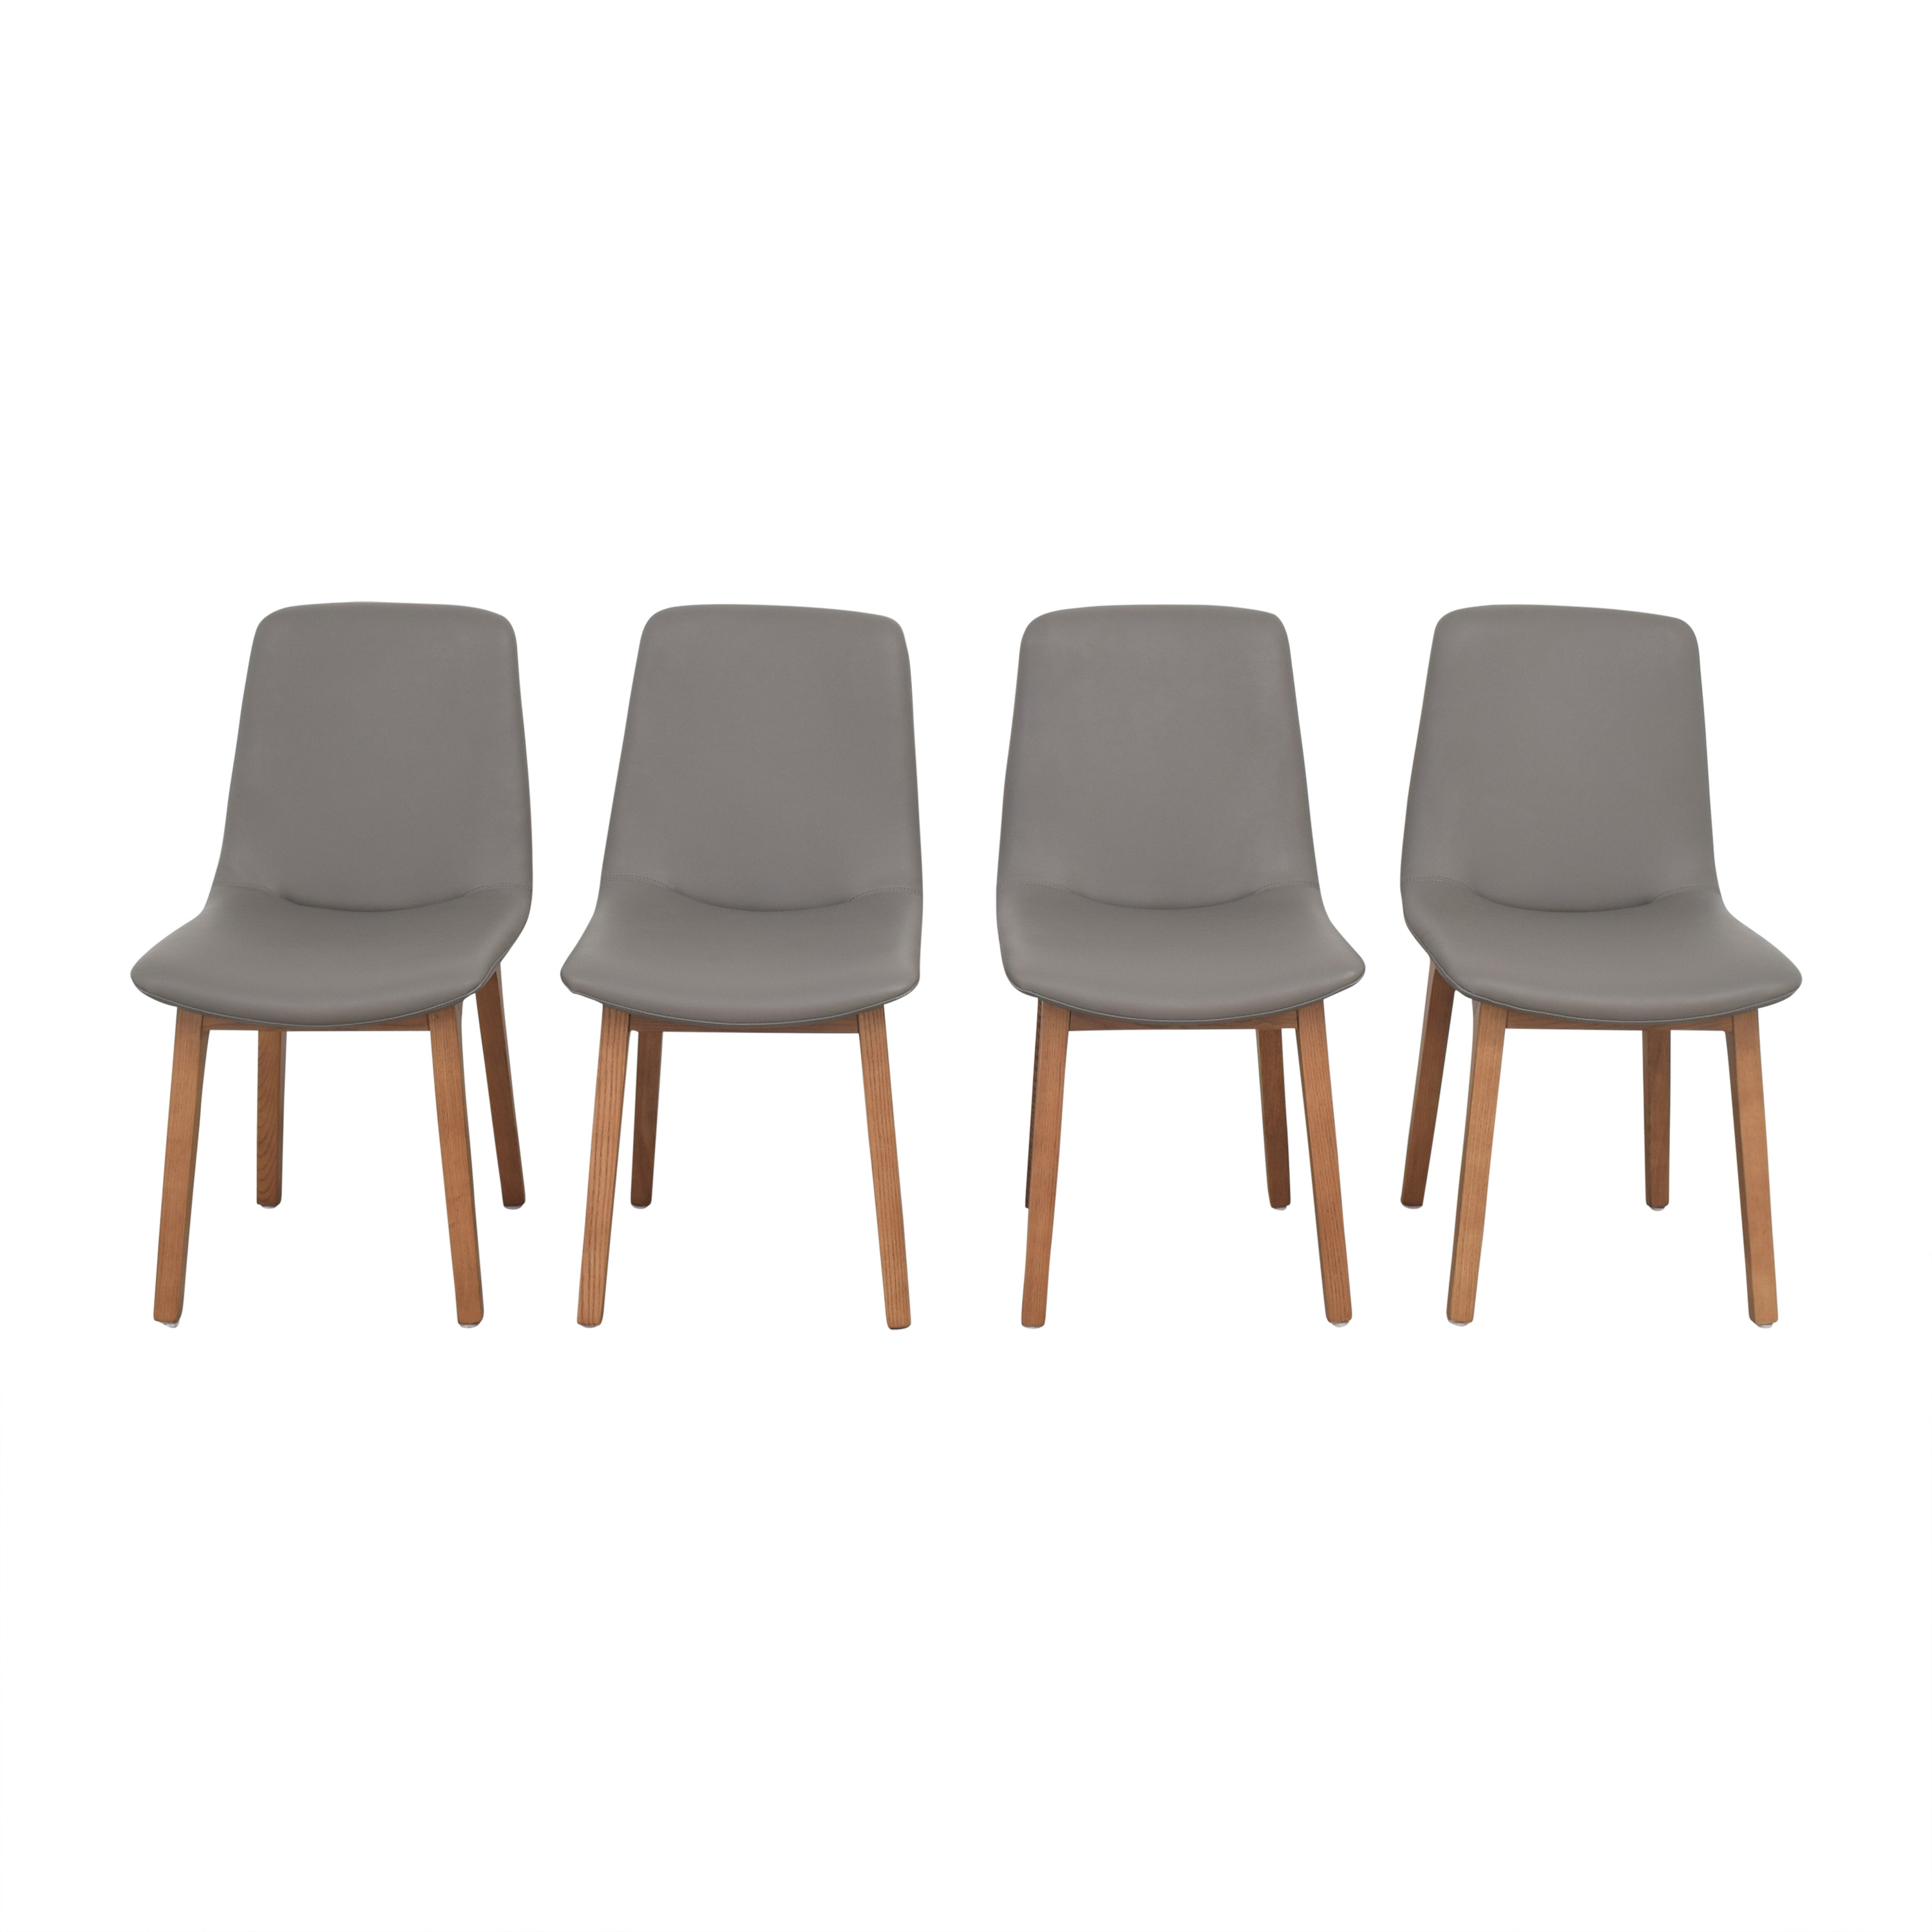 49 Off Rove Concepts Rove Concepts Aubrey Side Dining Chairs Chairs